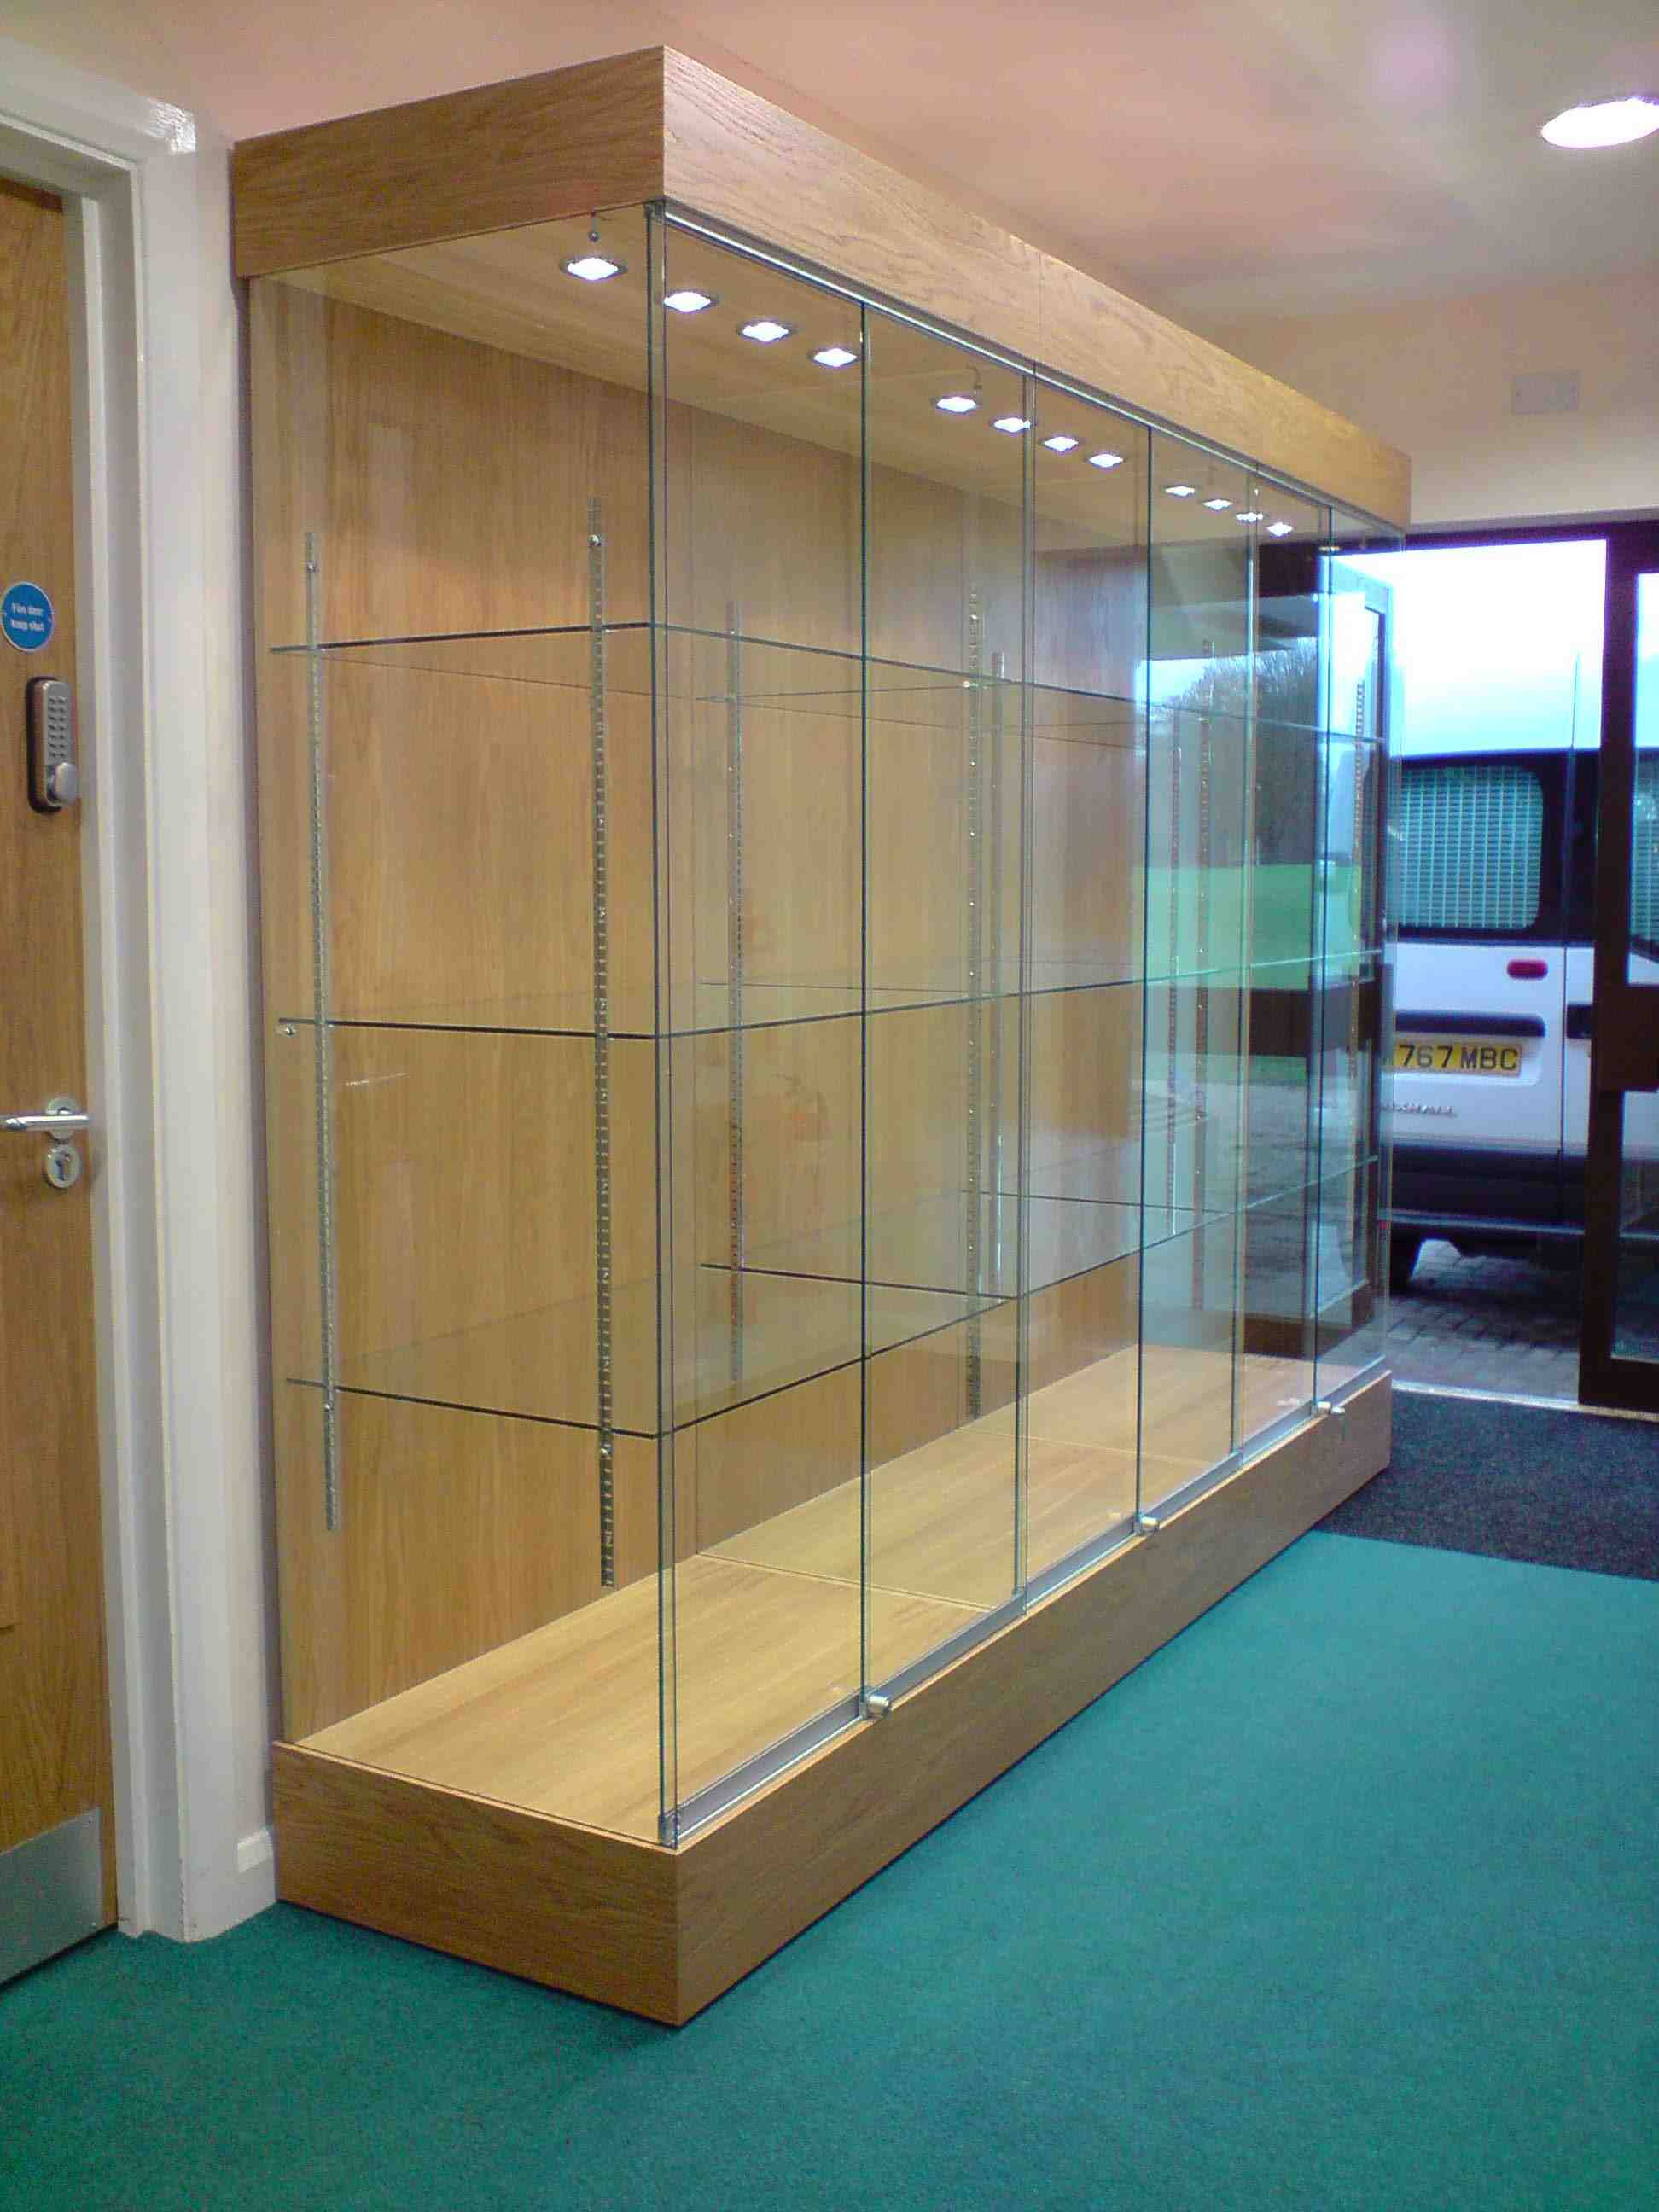 Oak glass display cabinet with LED lighting